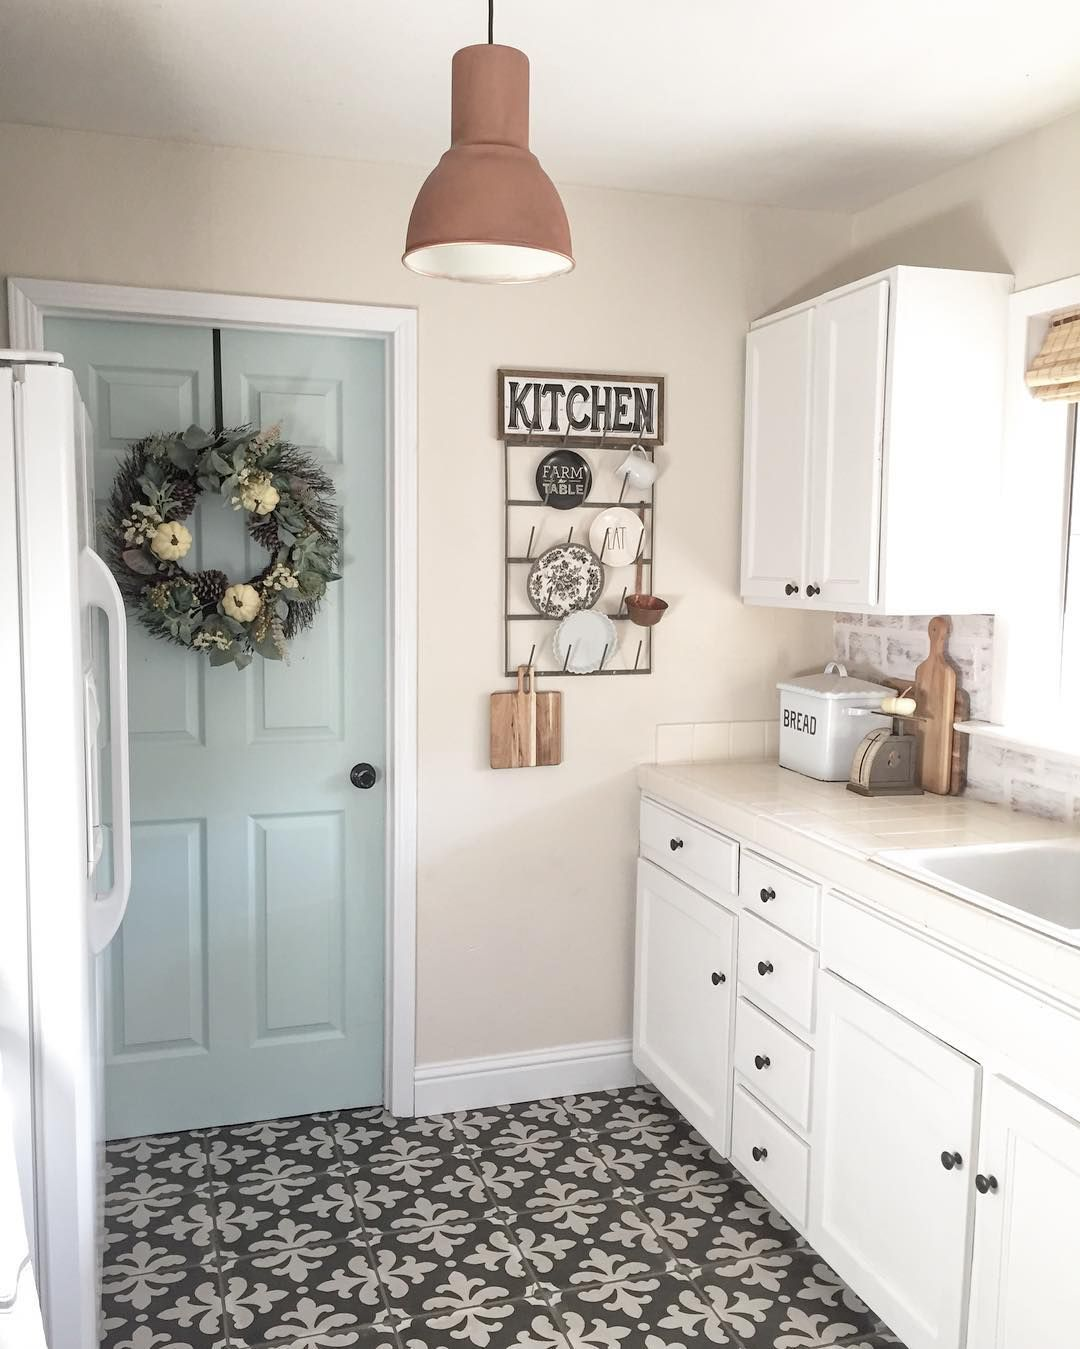 What Color To Paint Kitchen Walls: Door Is Whipped Mint By Behr And Walls Are Cream In My